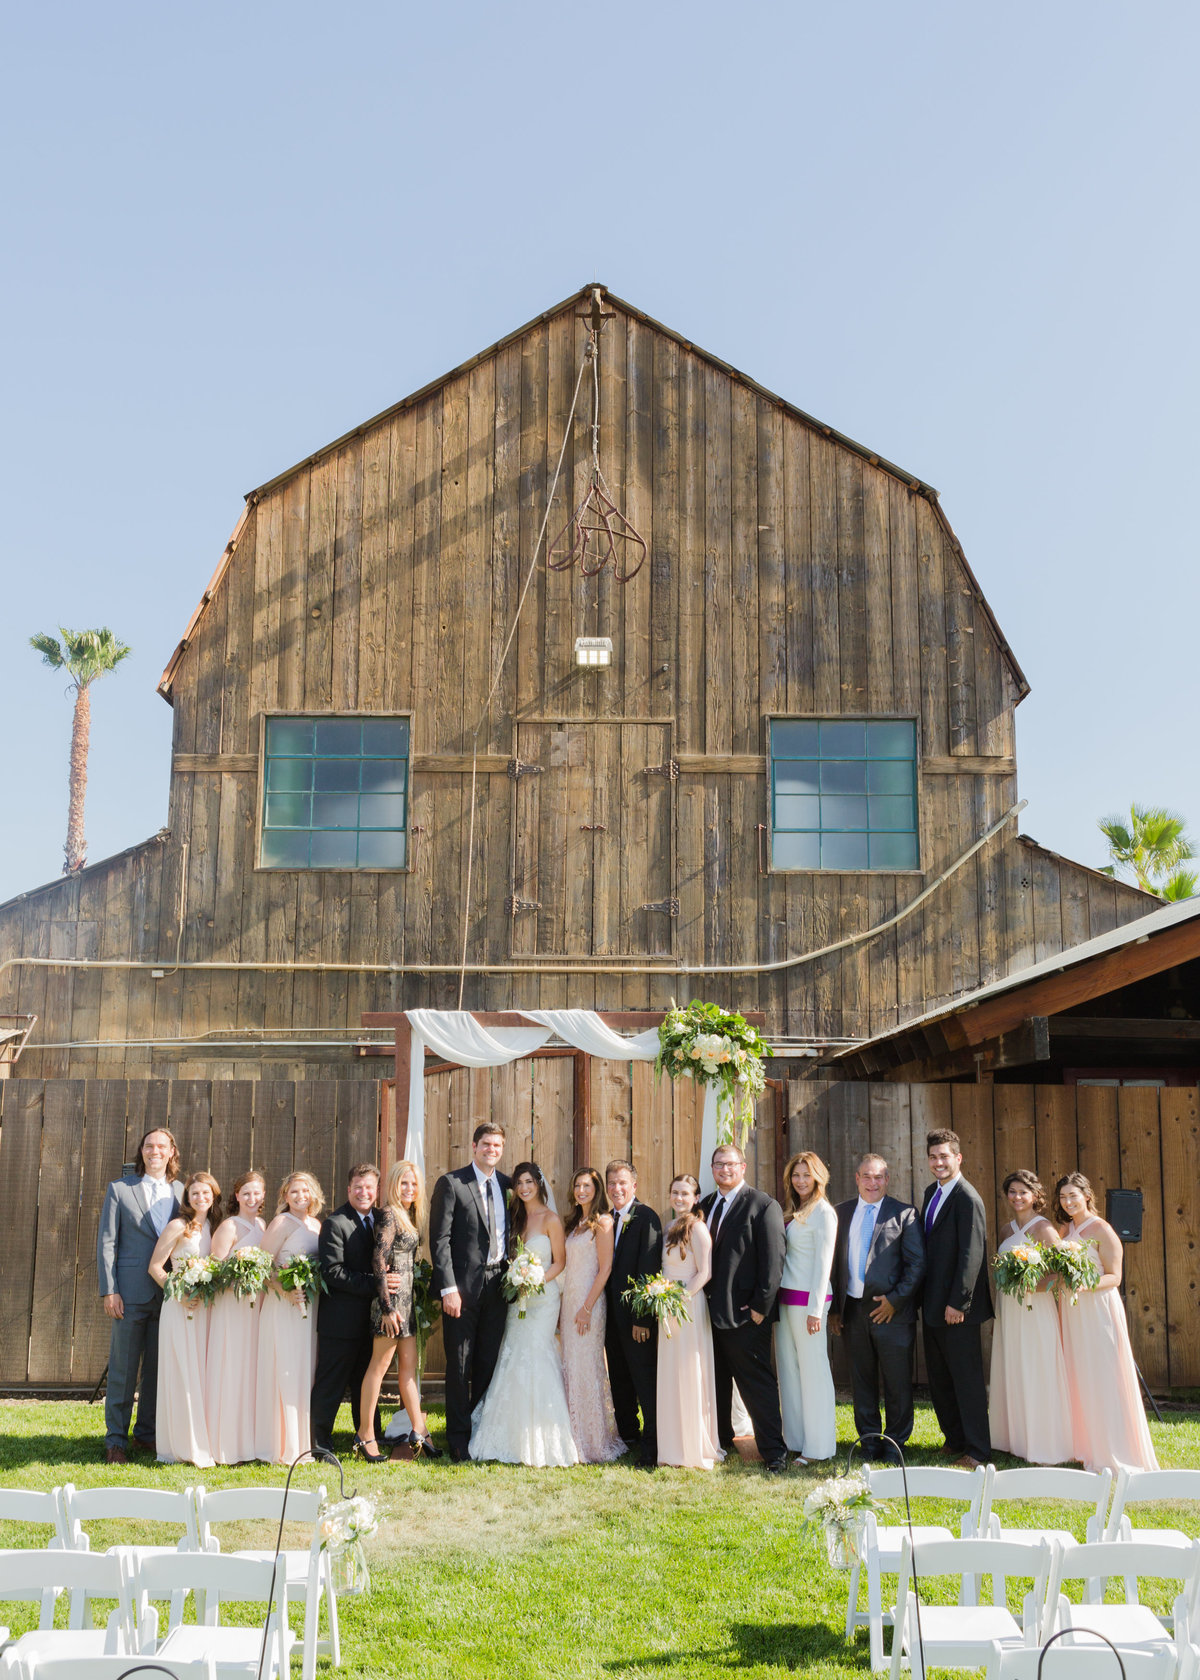 Erica Mendenhall Photography_Barn Wedding_MP_6883web-2